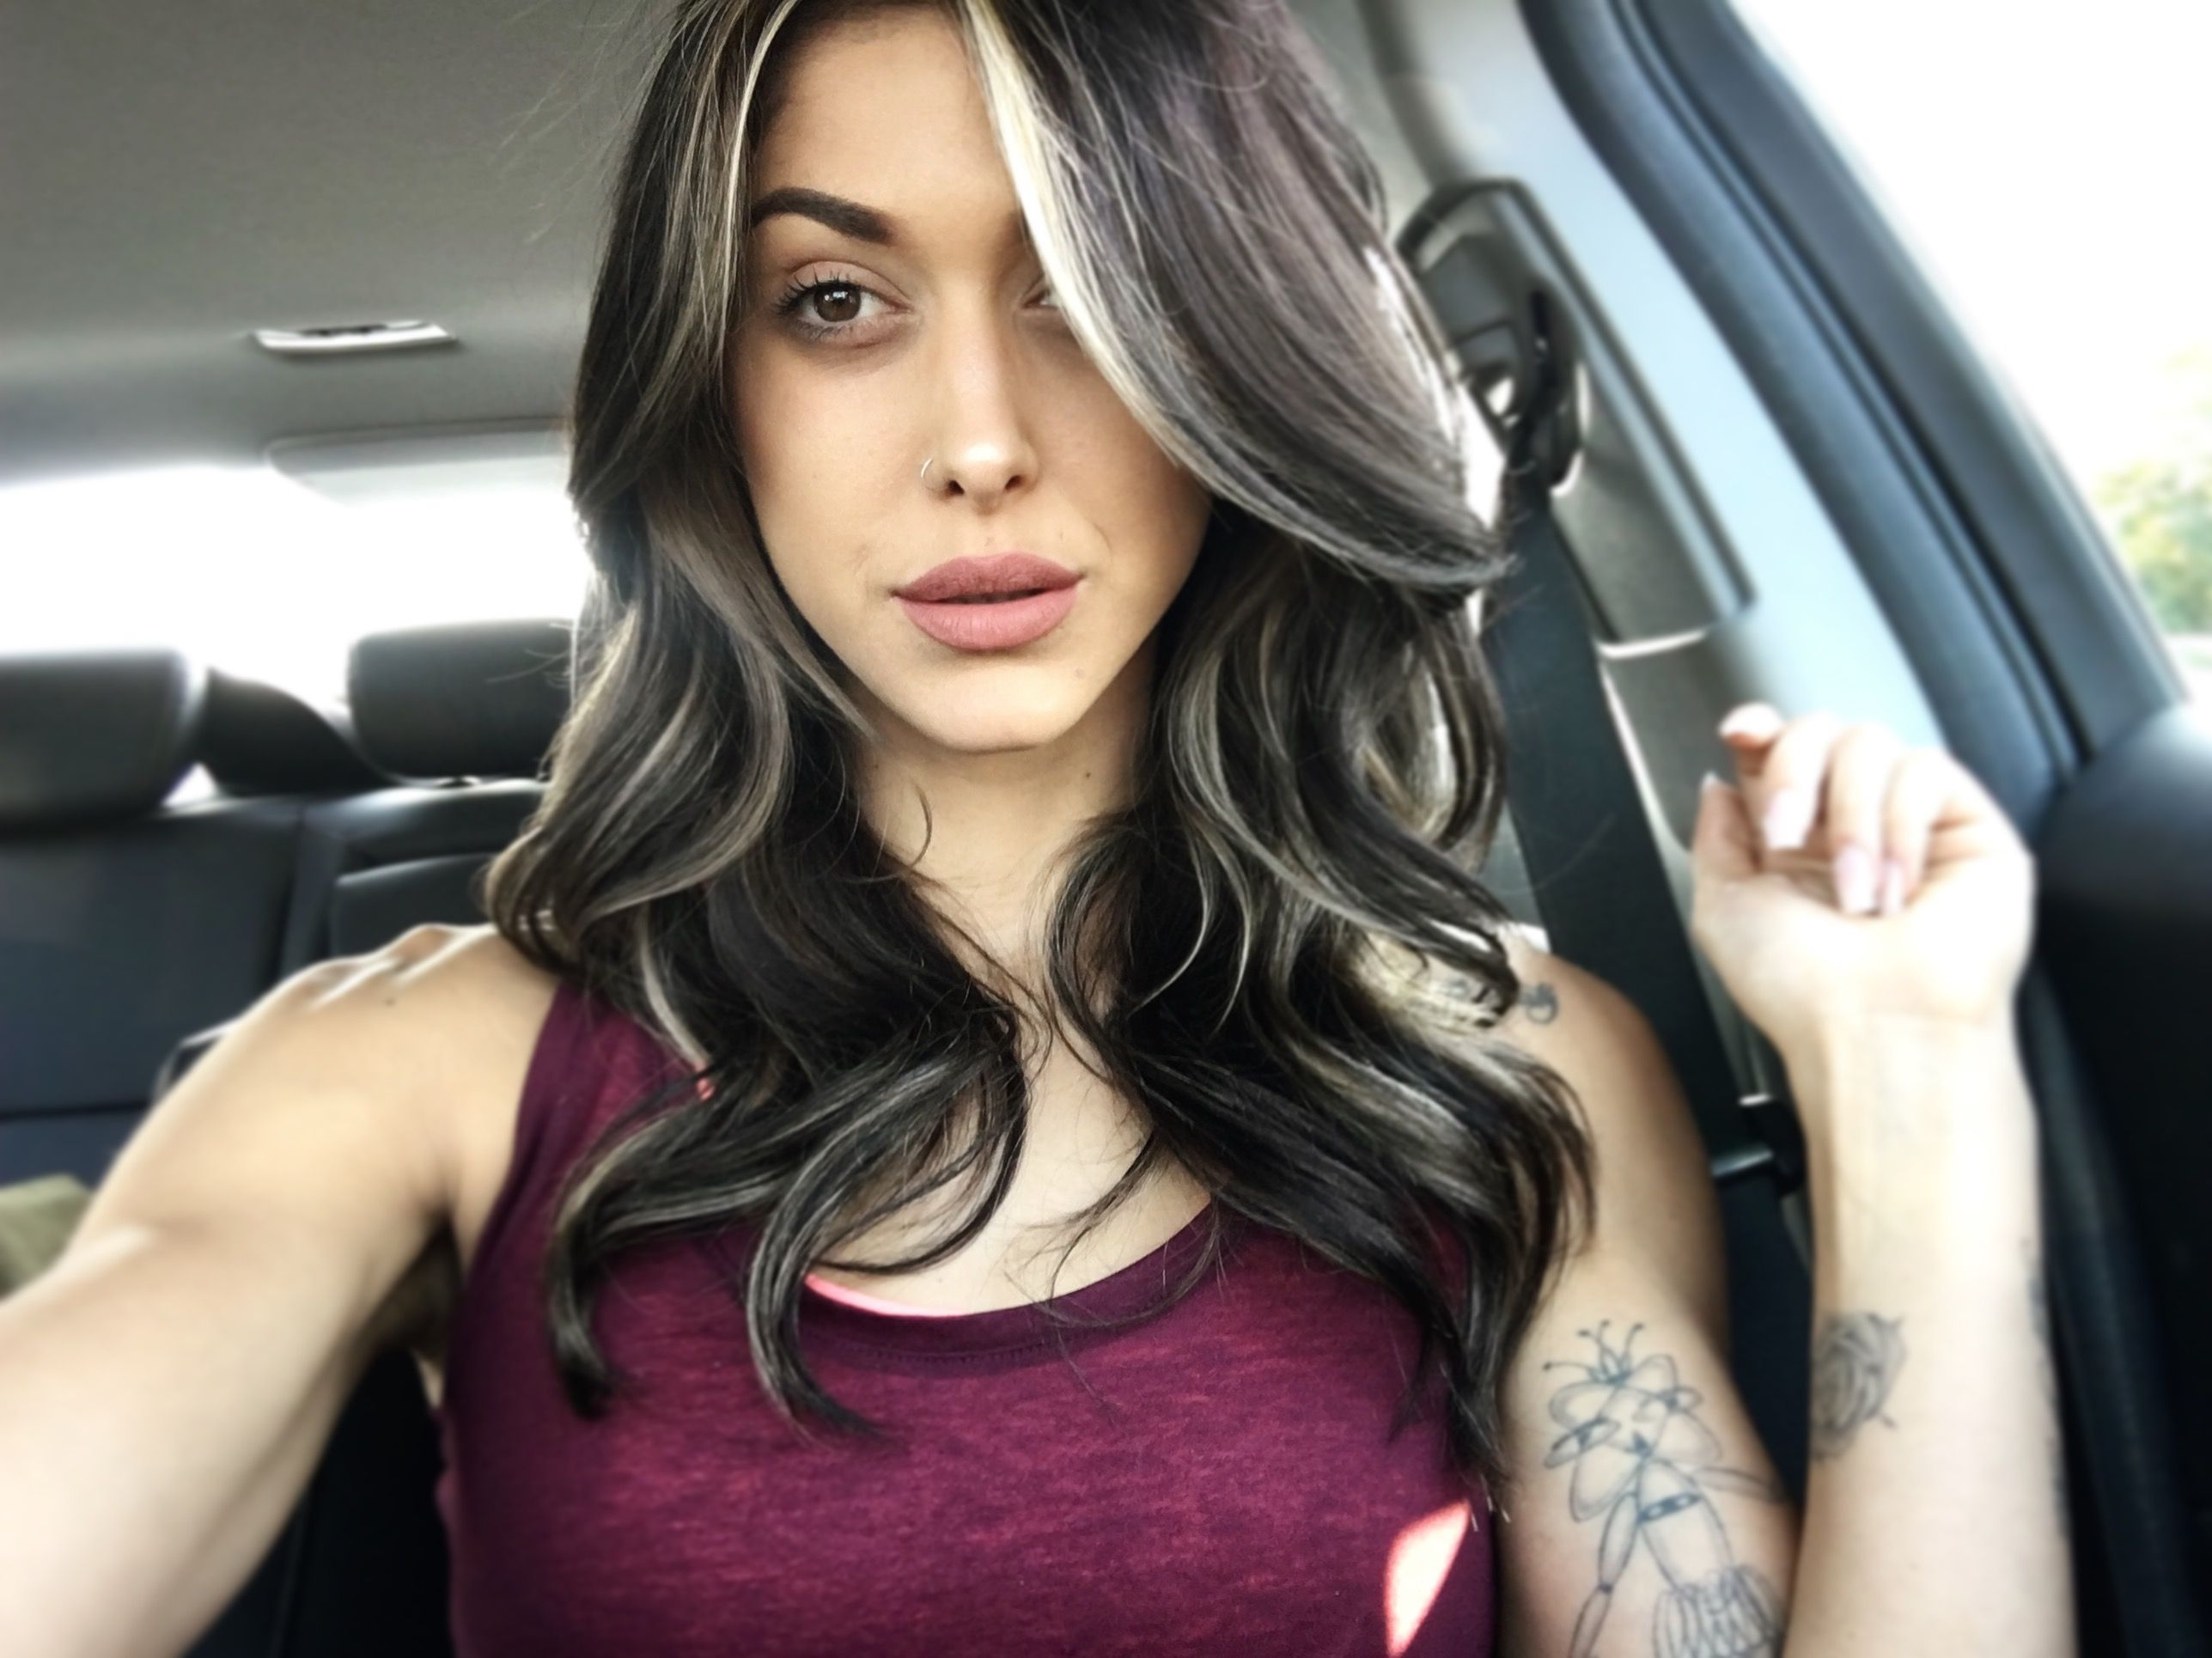 20 Unique And Beautiful Peekaboo Hairstyles Haircuts Hairstyles 2019 Hair Styles Dark Hair With Highlights Hair Highlights